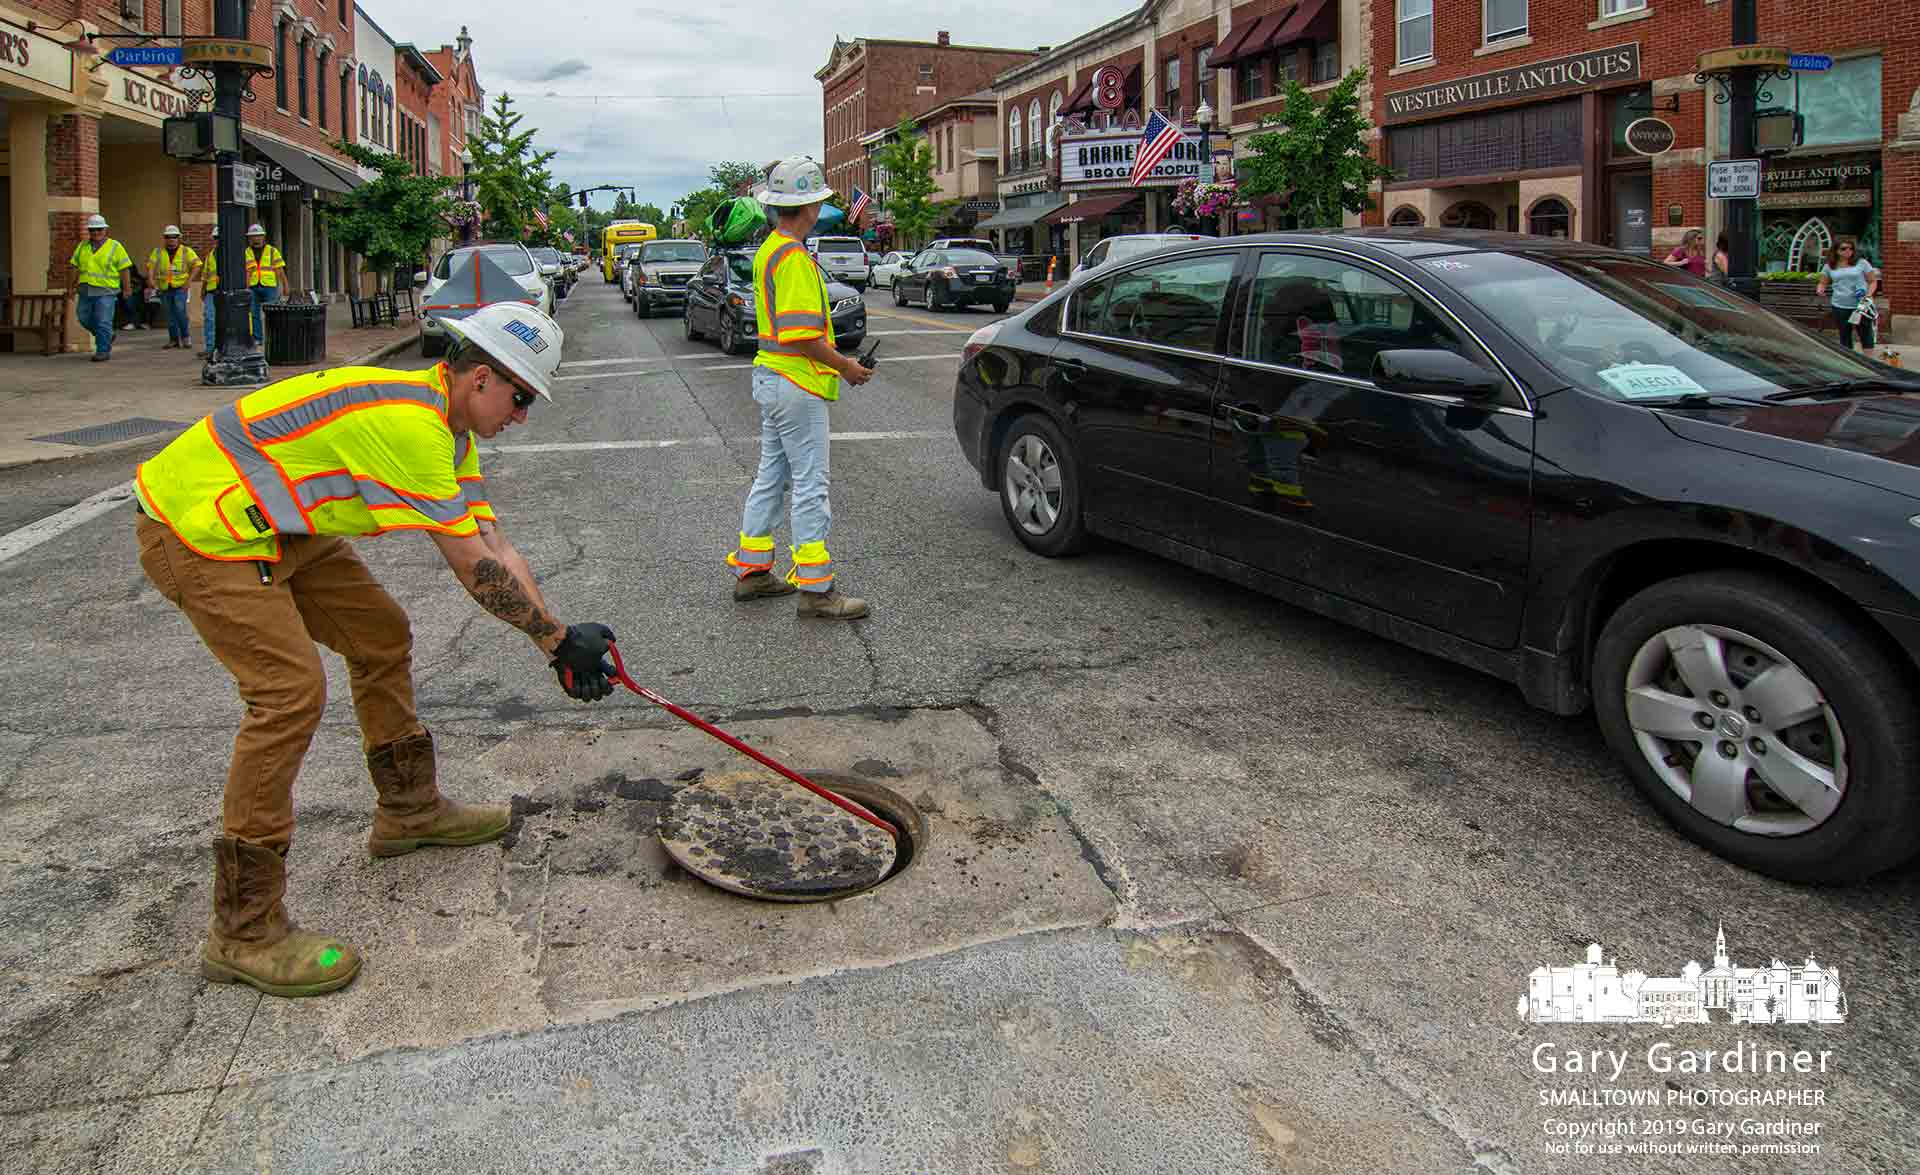 A pipeline crew worker pulls away a manhole cover at State and College to unjam a camera lodged in a sewer line during inspection before the company begins boring for a new Columbia Gas pipeline beneath State Street. My Final Photo for June 12, 2019.